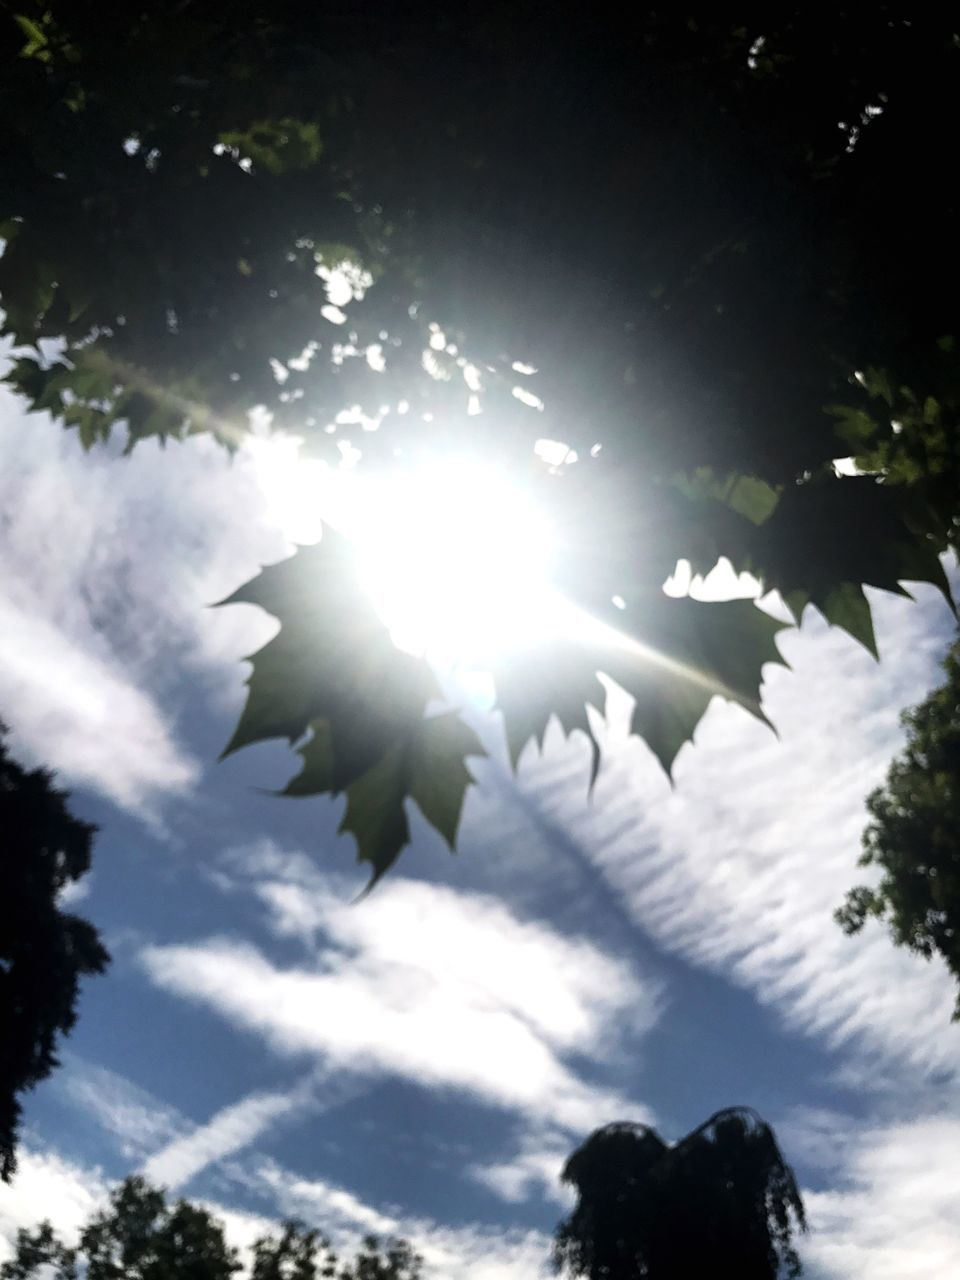 low angle view, sun, sky, tree, sunbeam, lens flare, nature, outdoors, sunlight, no people, cloud - sky, leaf, silhouette, growth, beauty in nature, day, branch, scenics